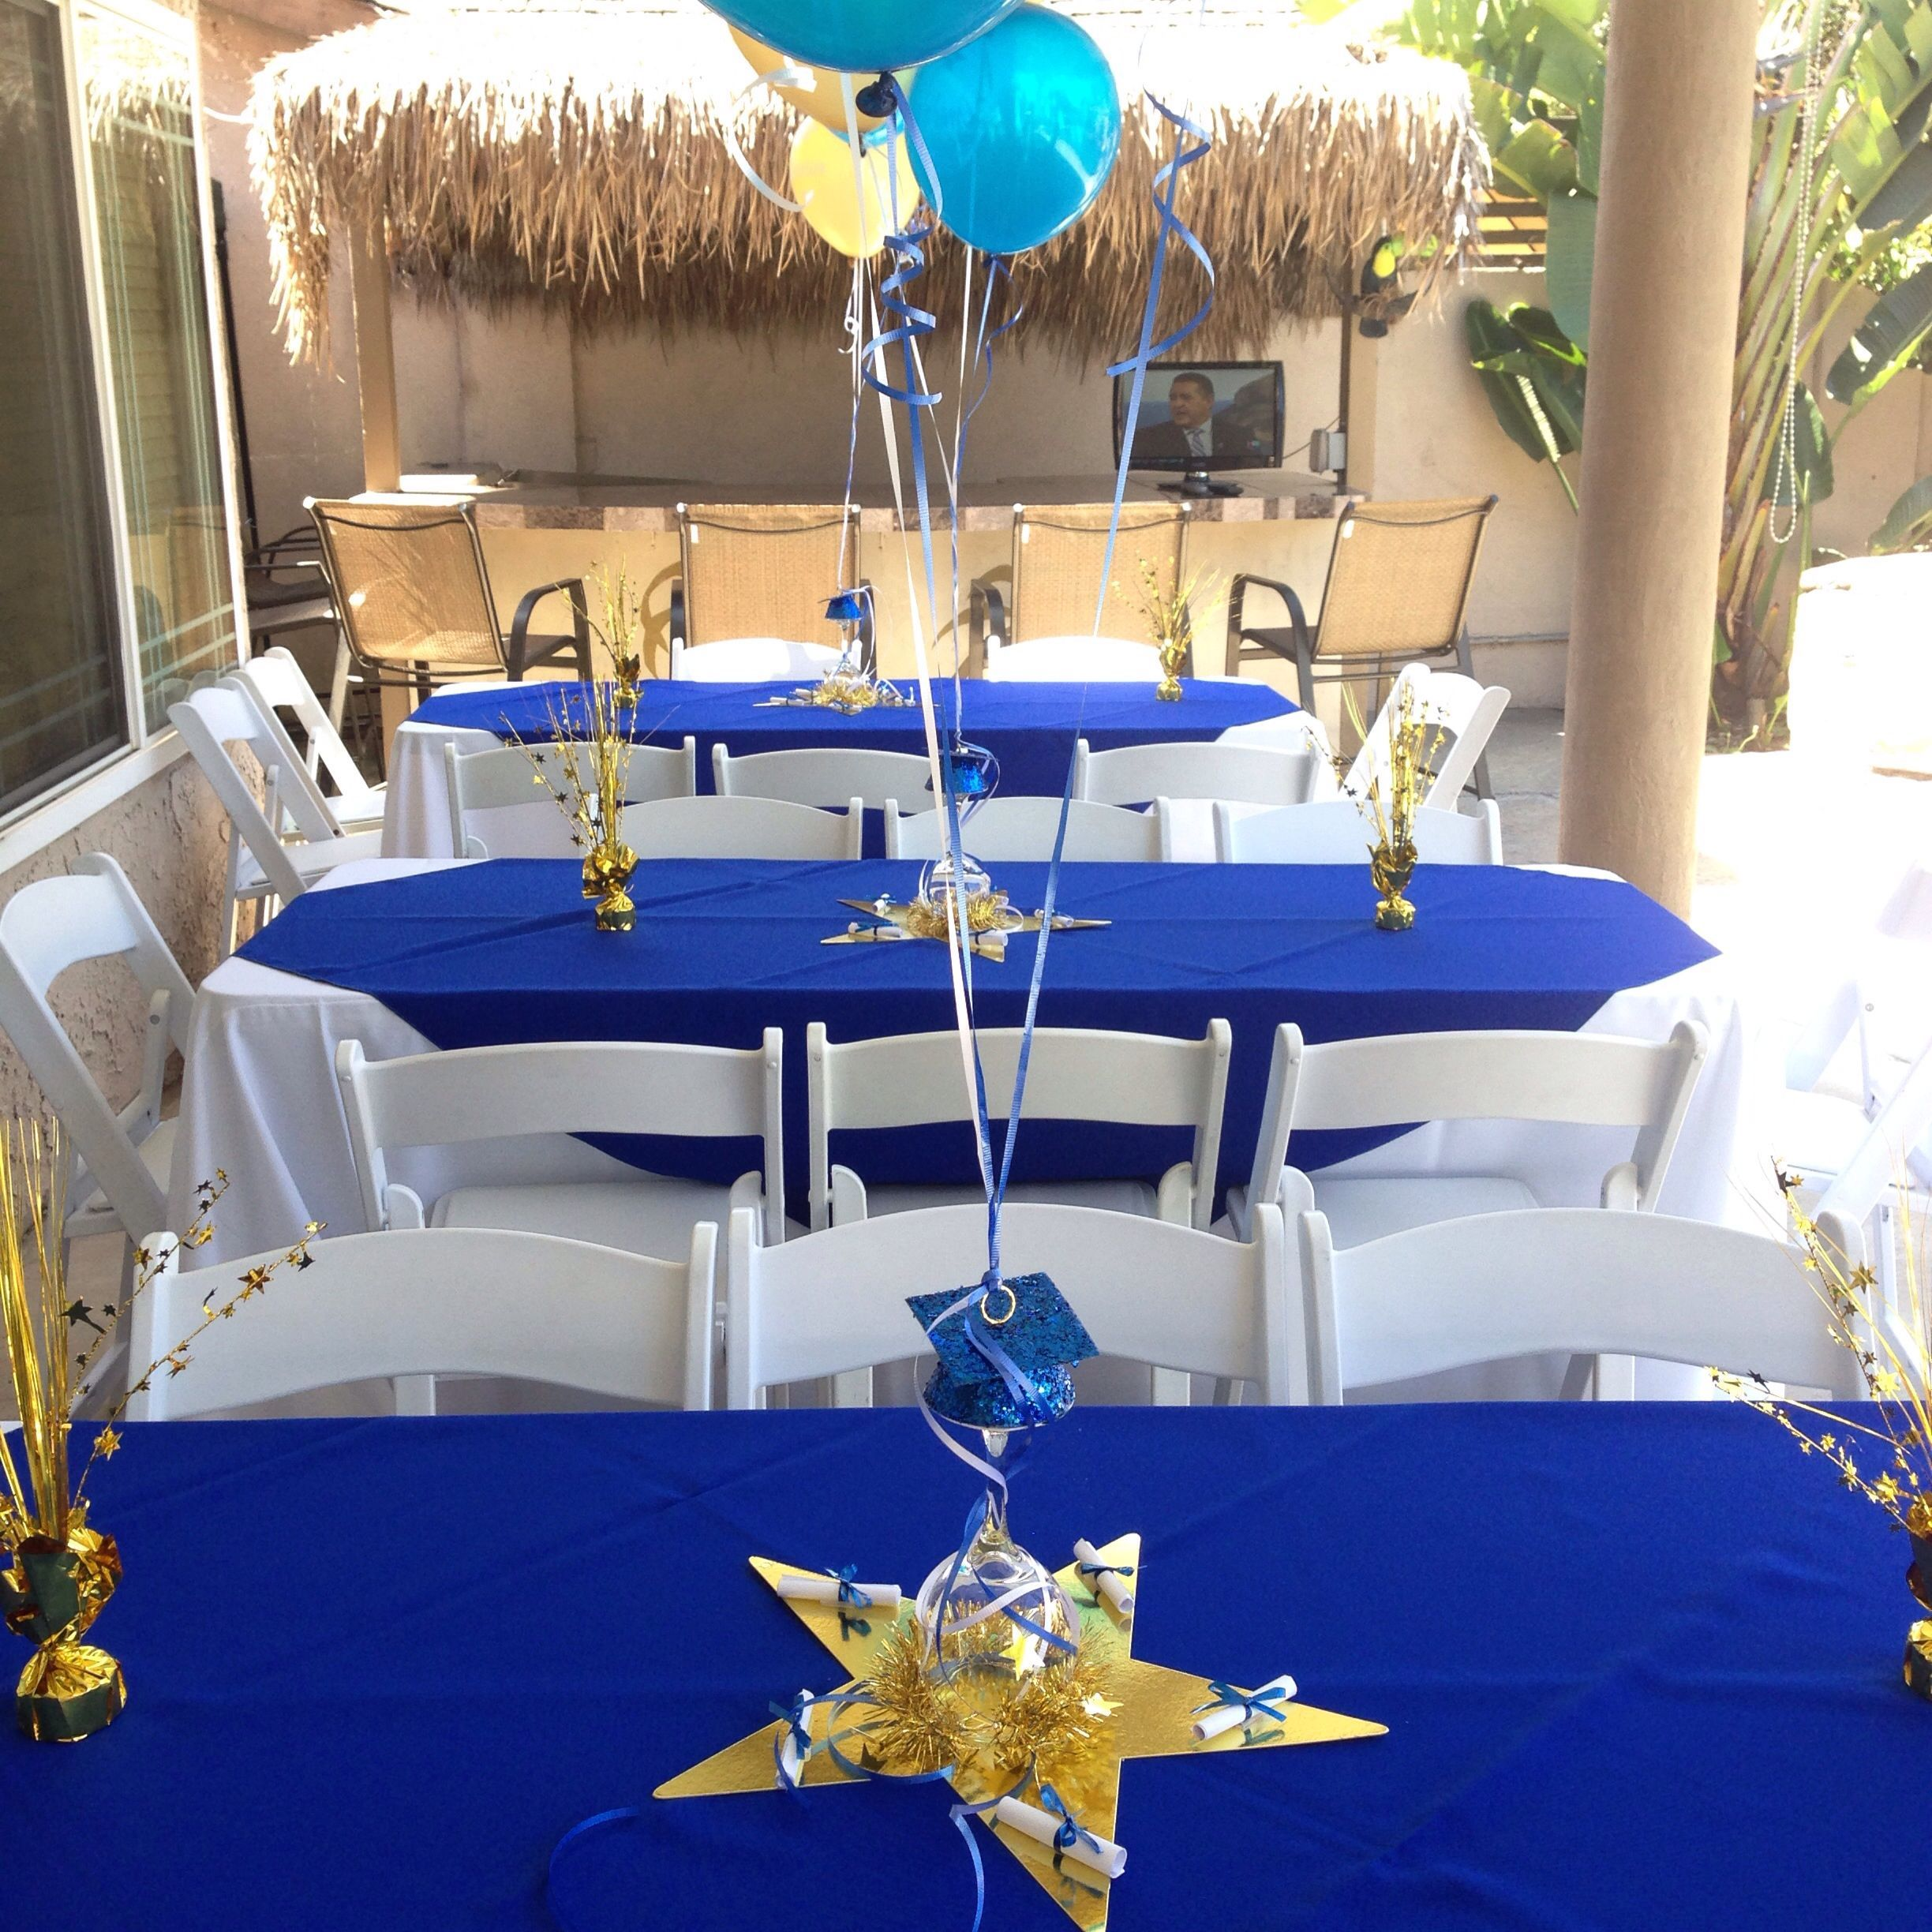 Image Result For High School Graduation Party Ideas Grad Party